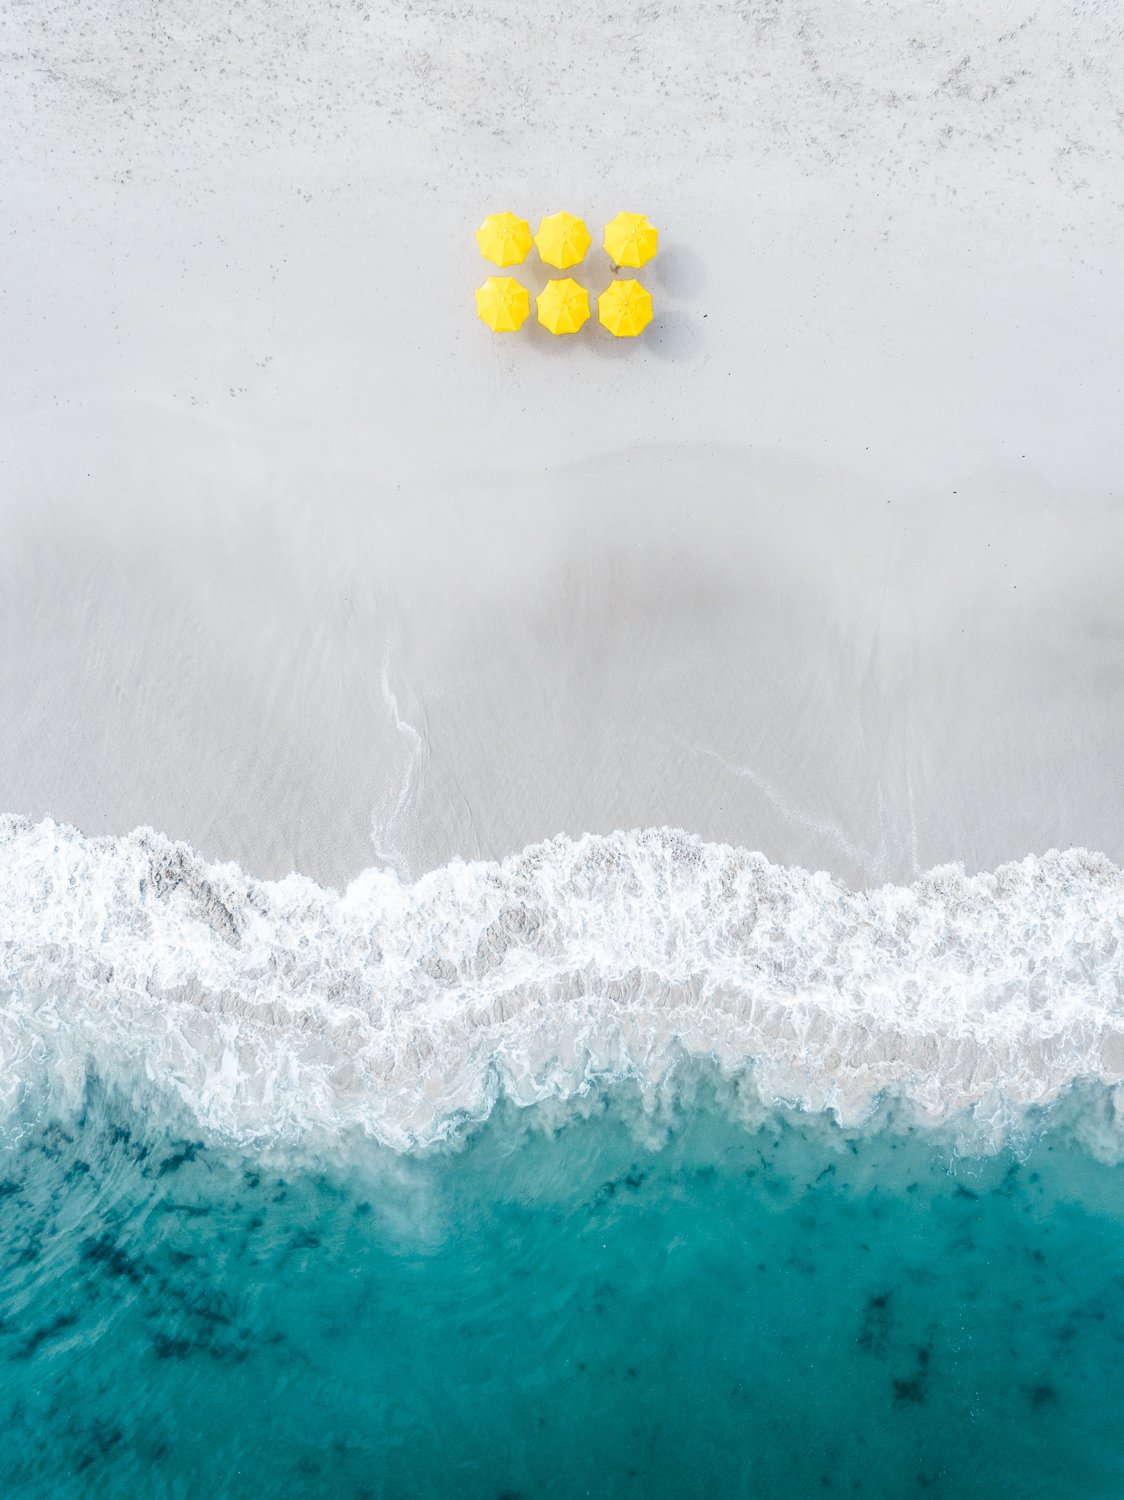 Aerial of six yellow umbrellas next to blue ocean on Camps Bay beach in Cape Town